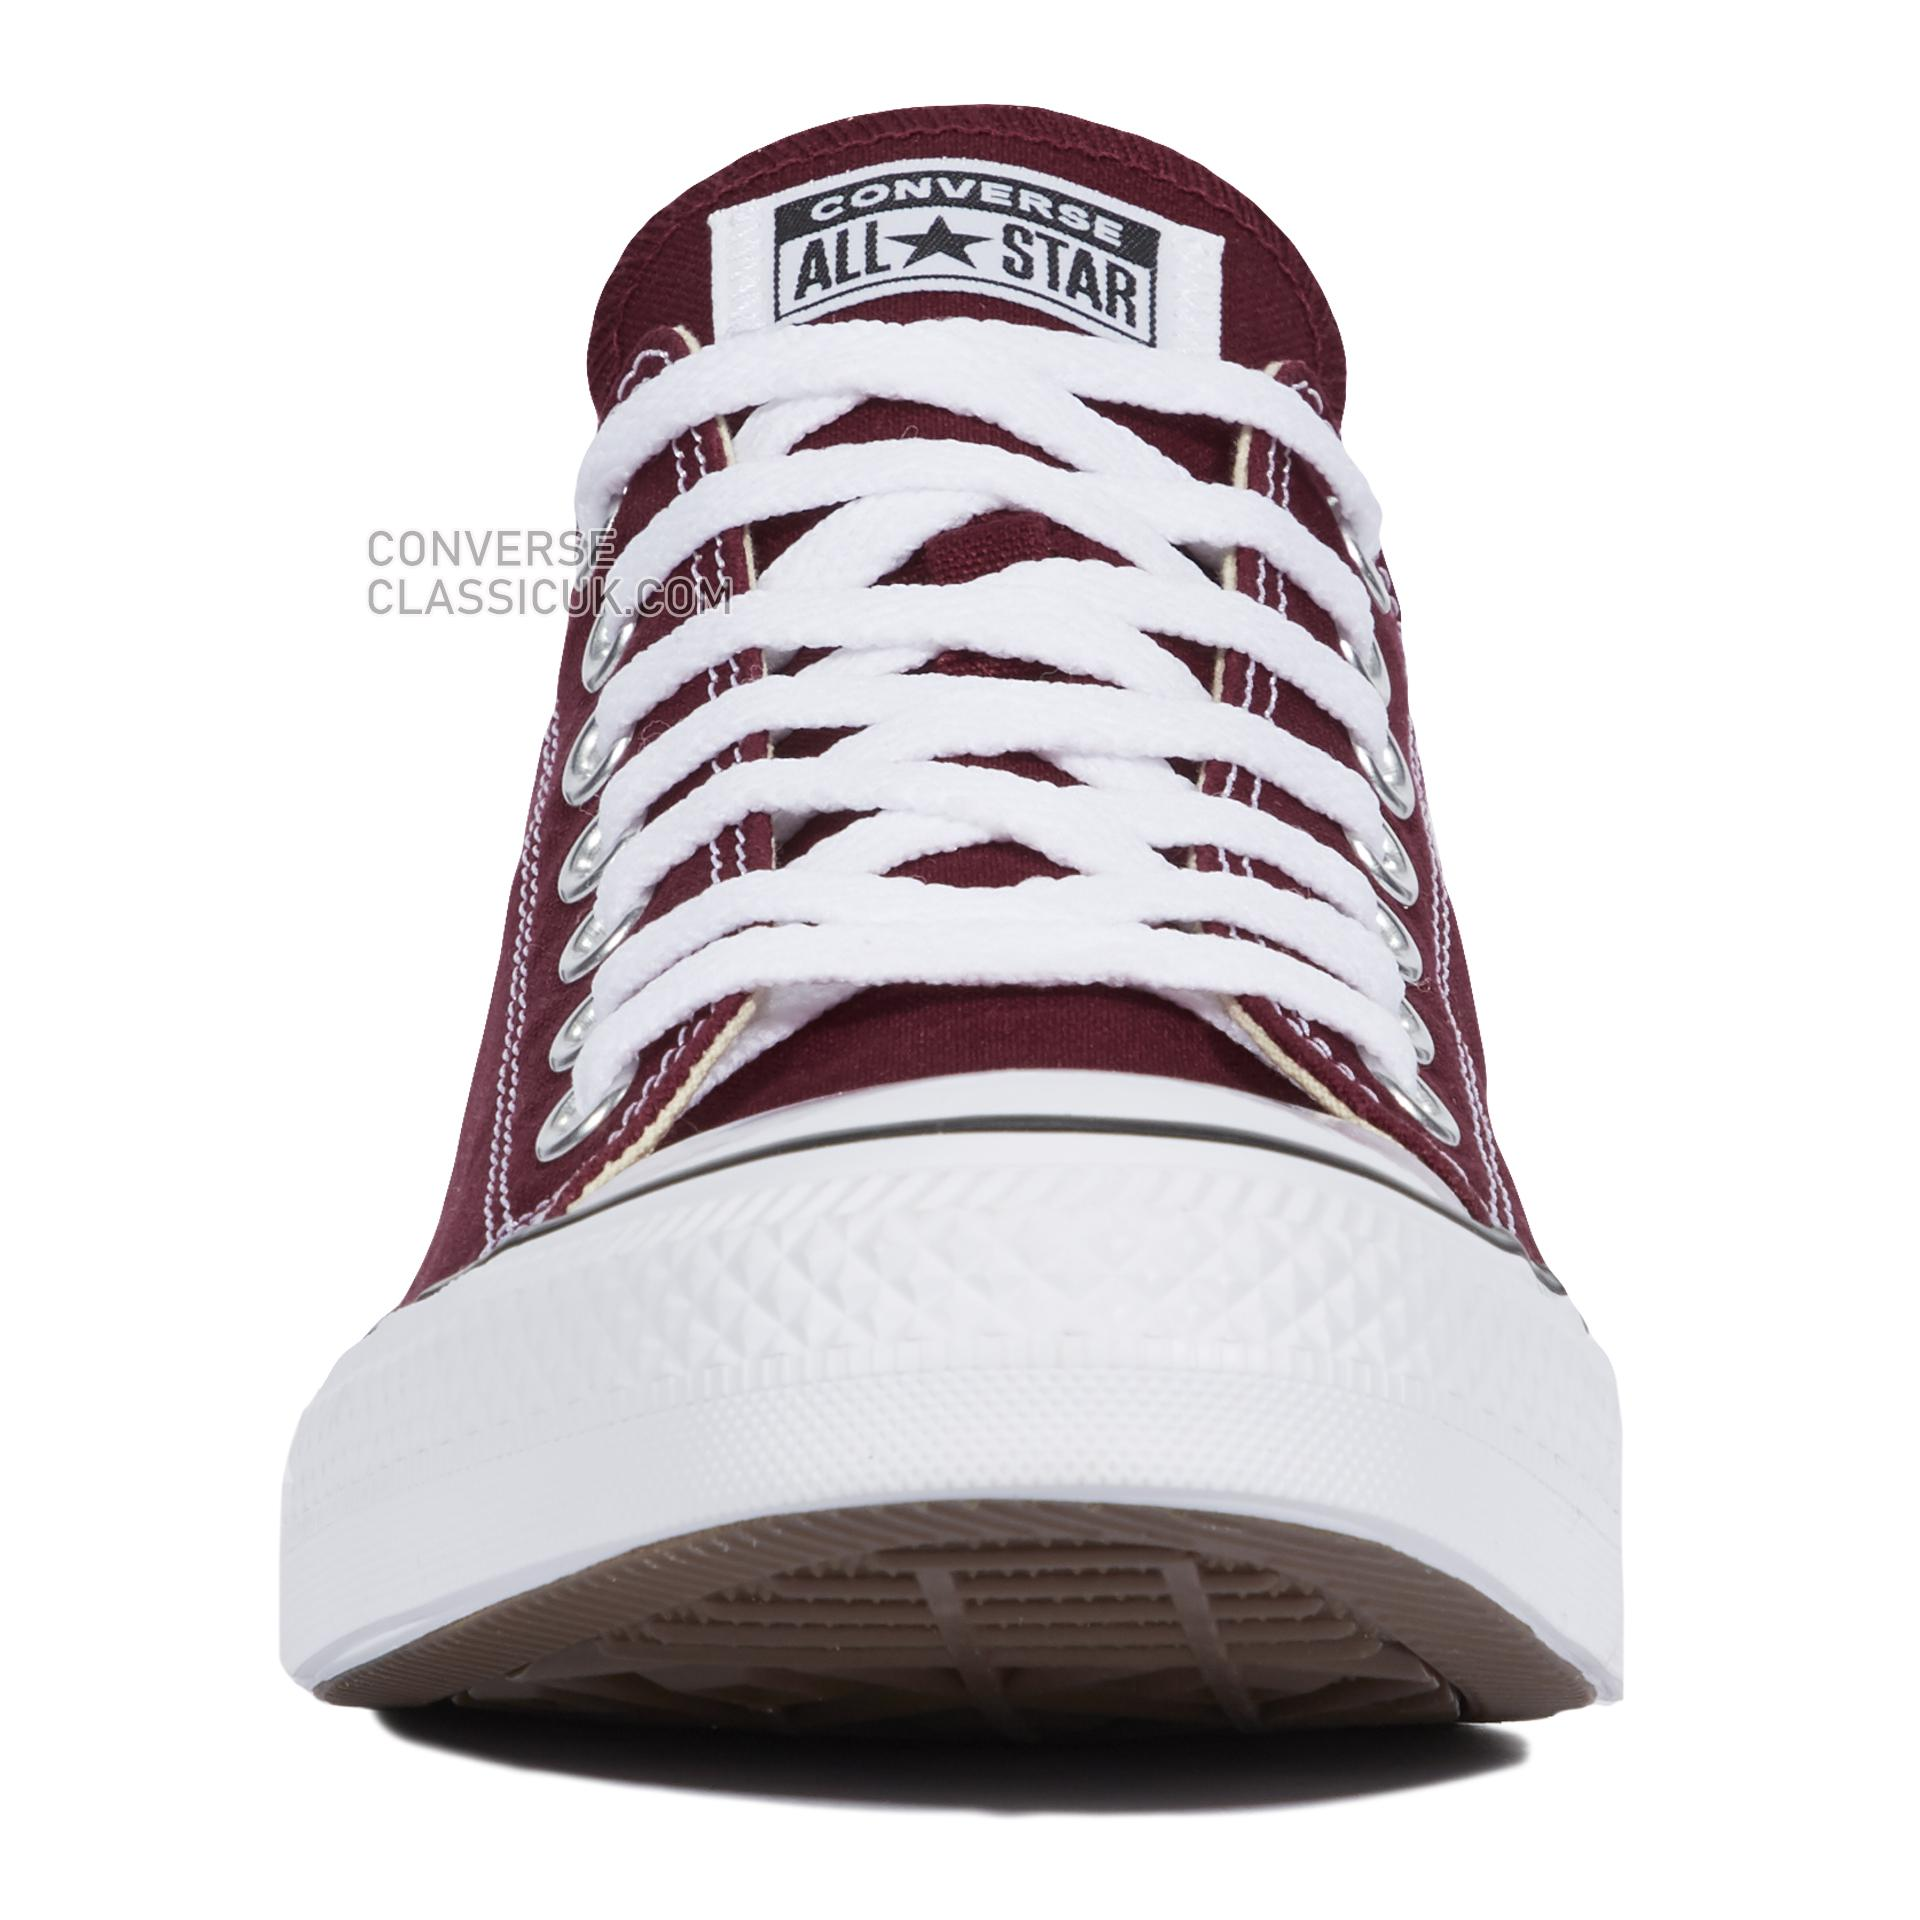 Converse Chuck Taylor All Star Classic Mens Womens Unisex M9691C Maroon Shoes